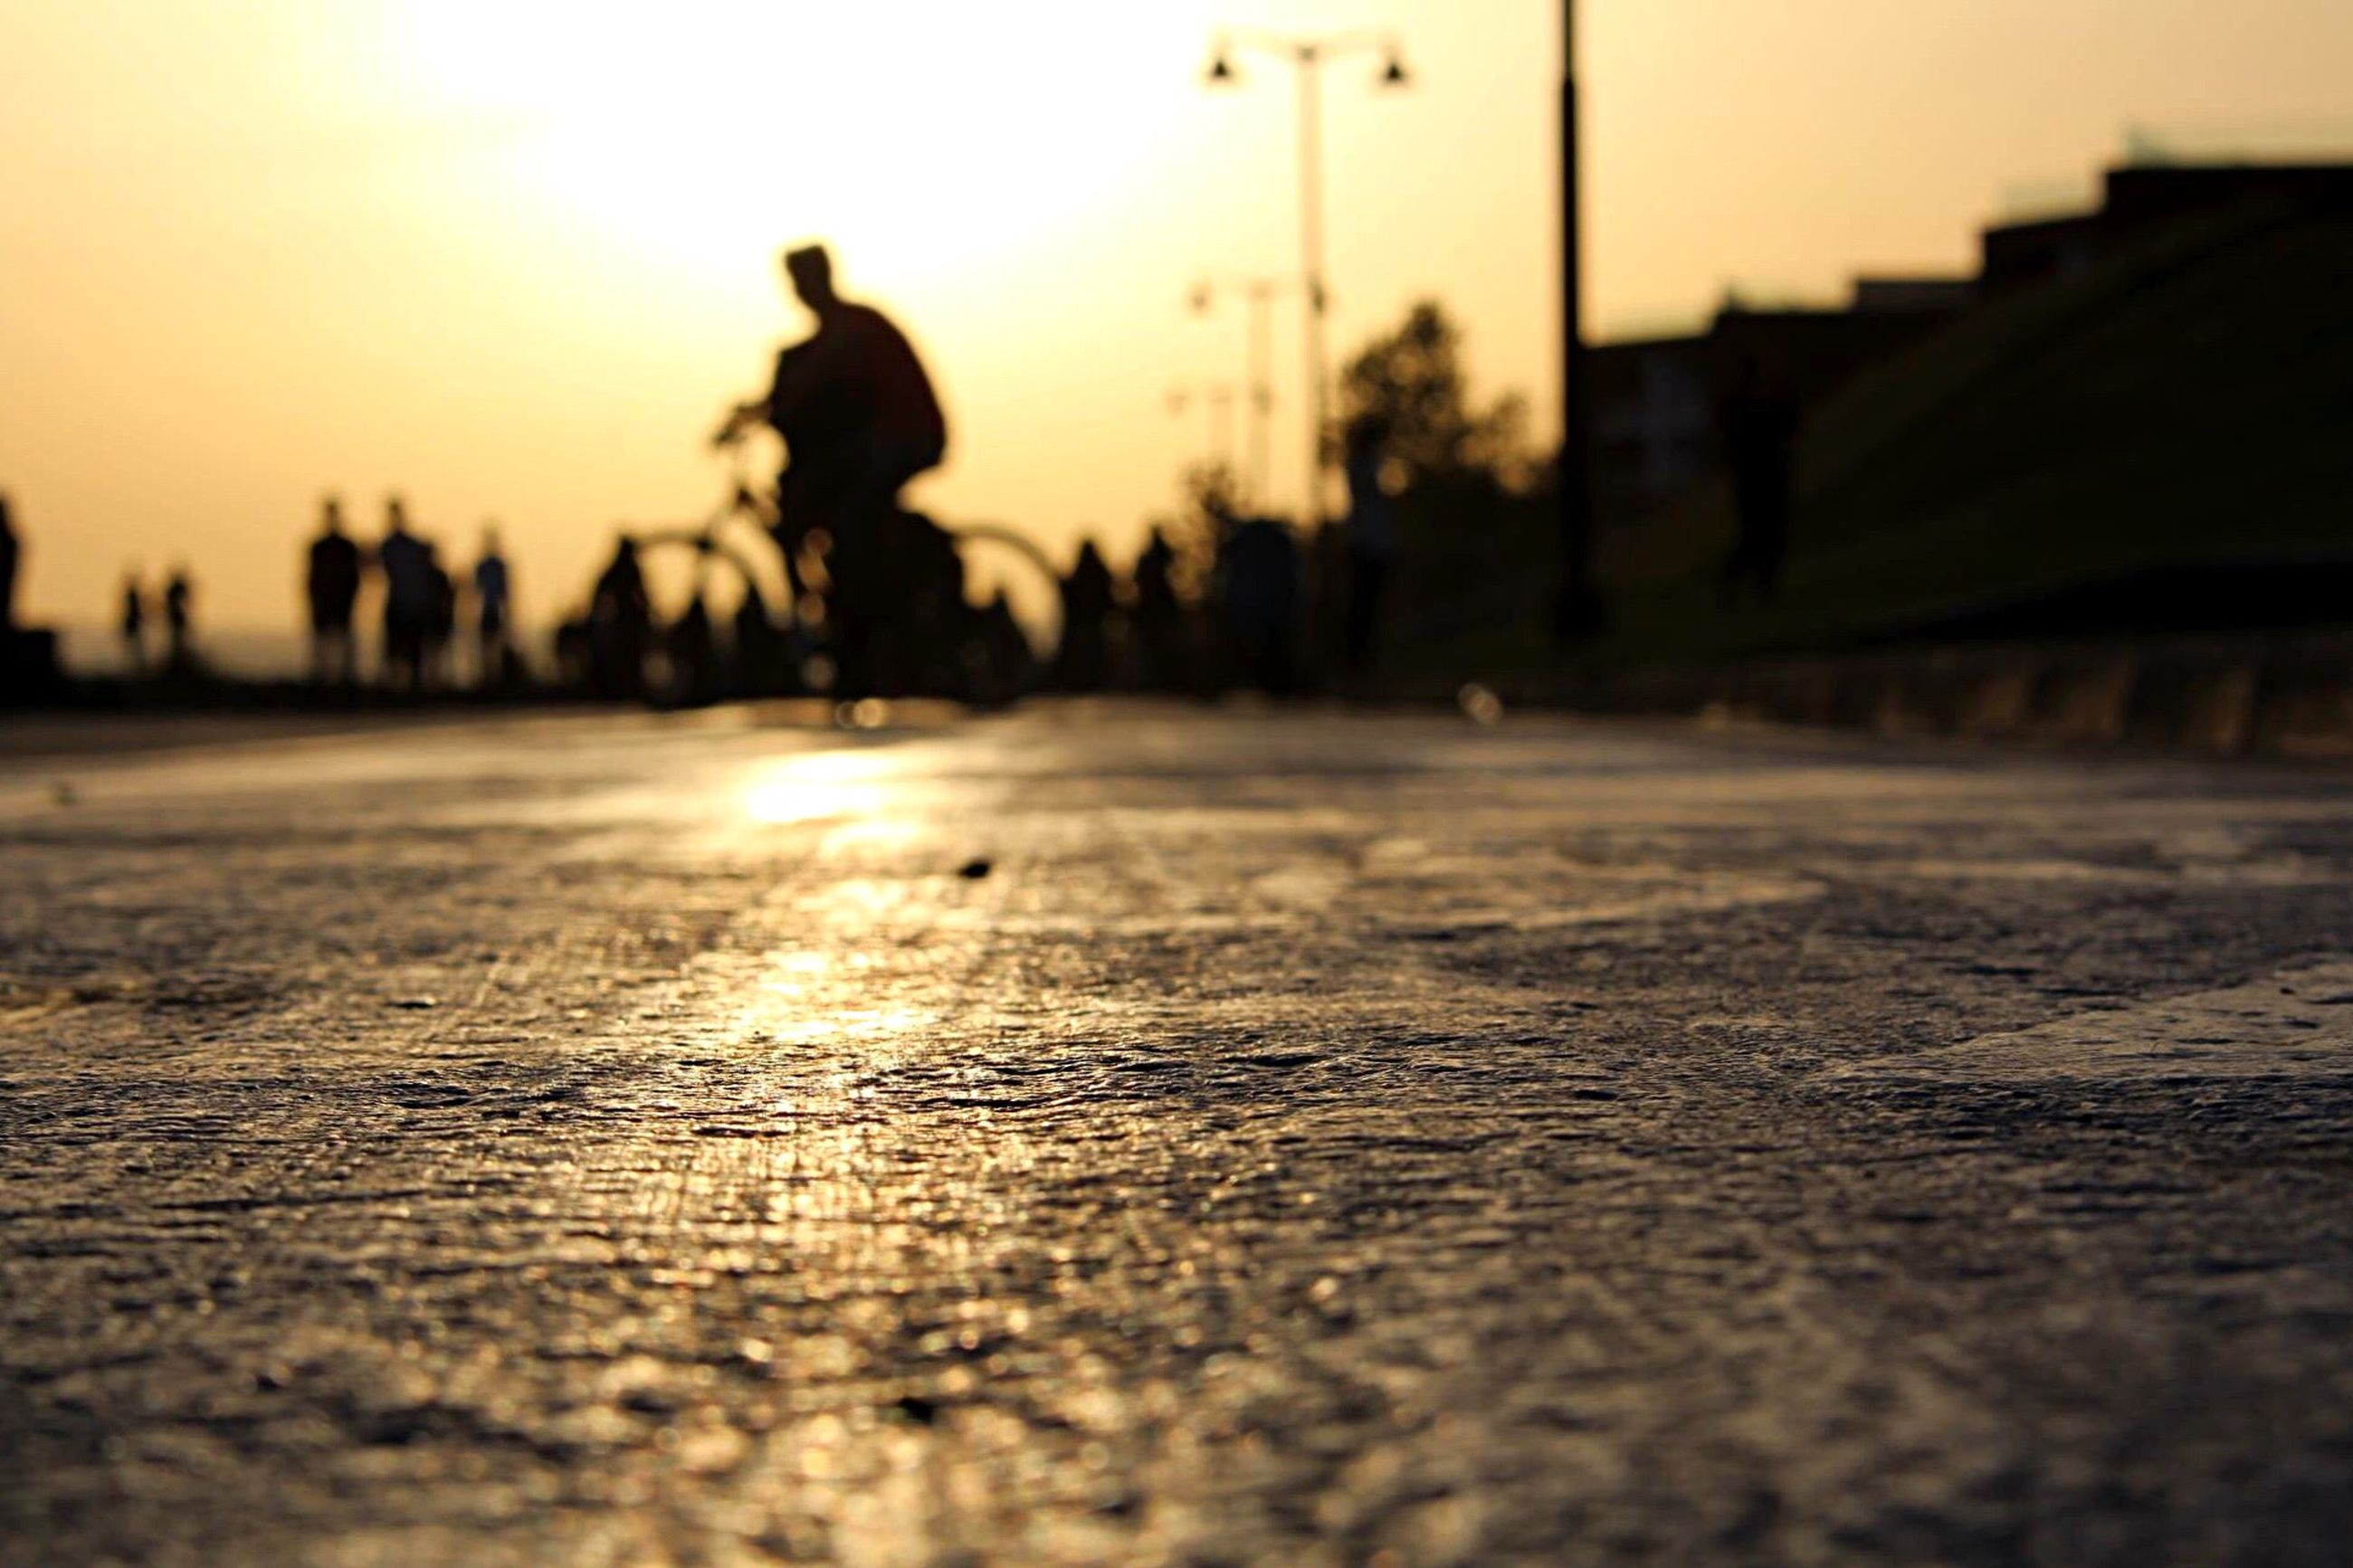 sunset, silhouette, surface level, selective focus, sky, street, walking, focus on foreground, sunlight, road, outdoors, leisure activity, outline, lifestyles, men, incidental people, nature, shadow, orange color